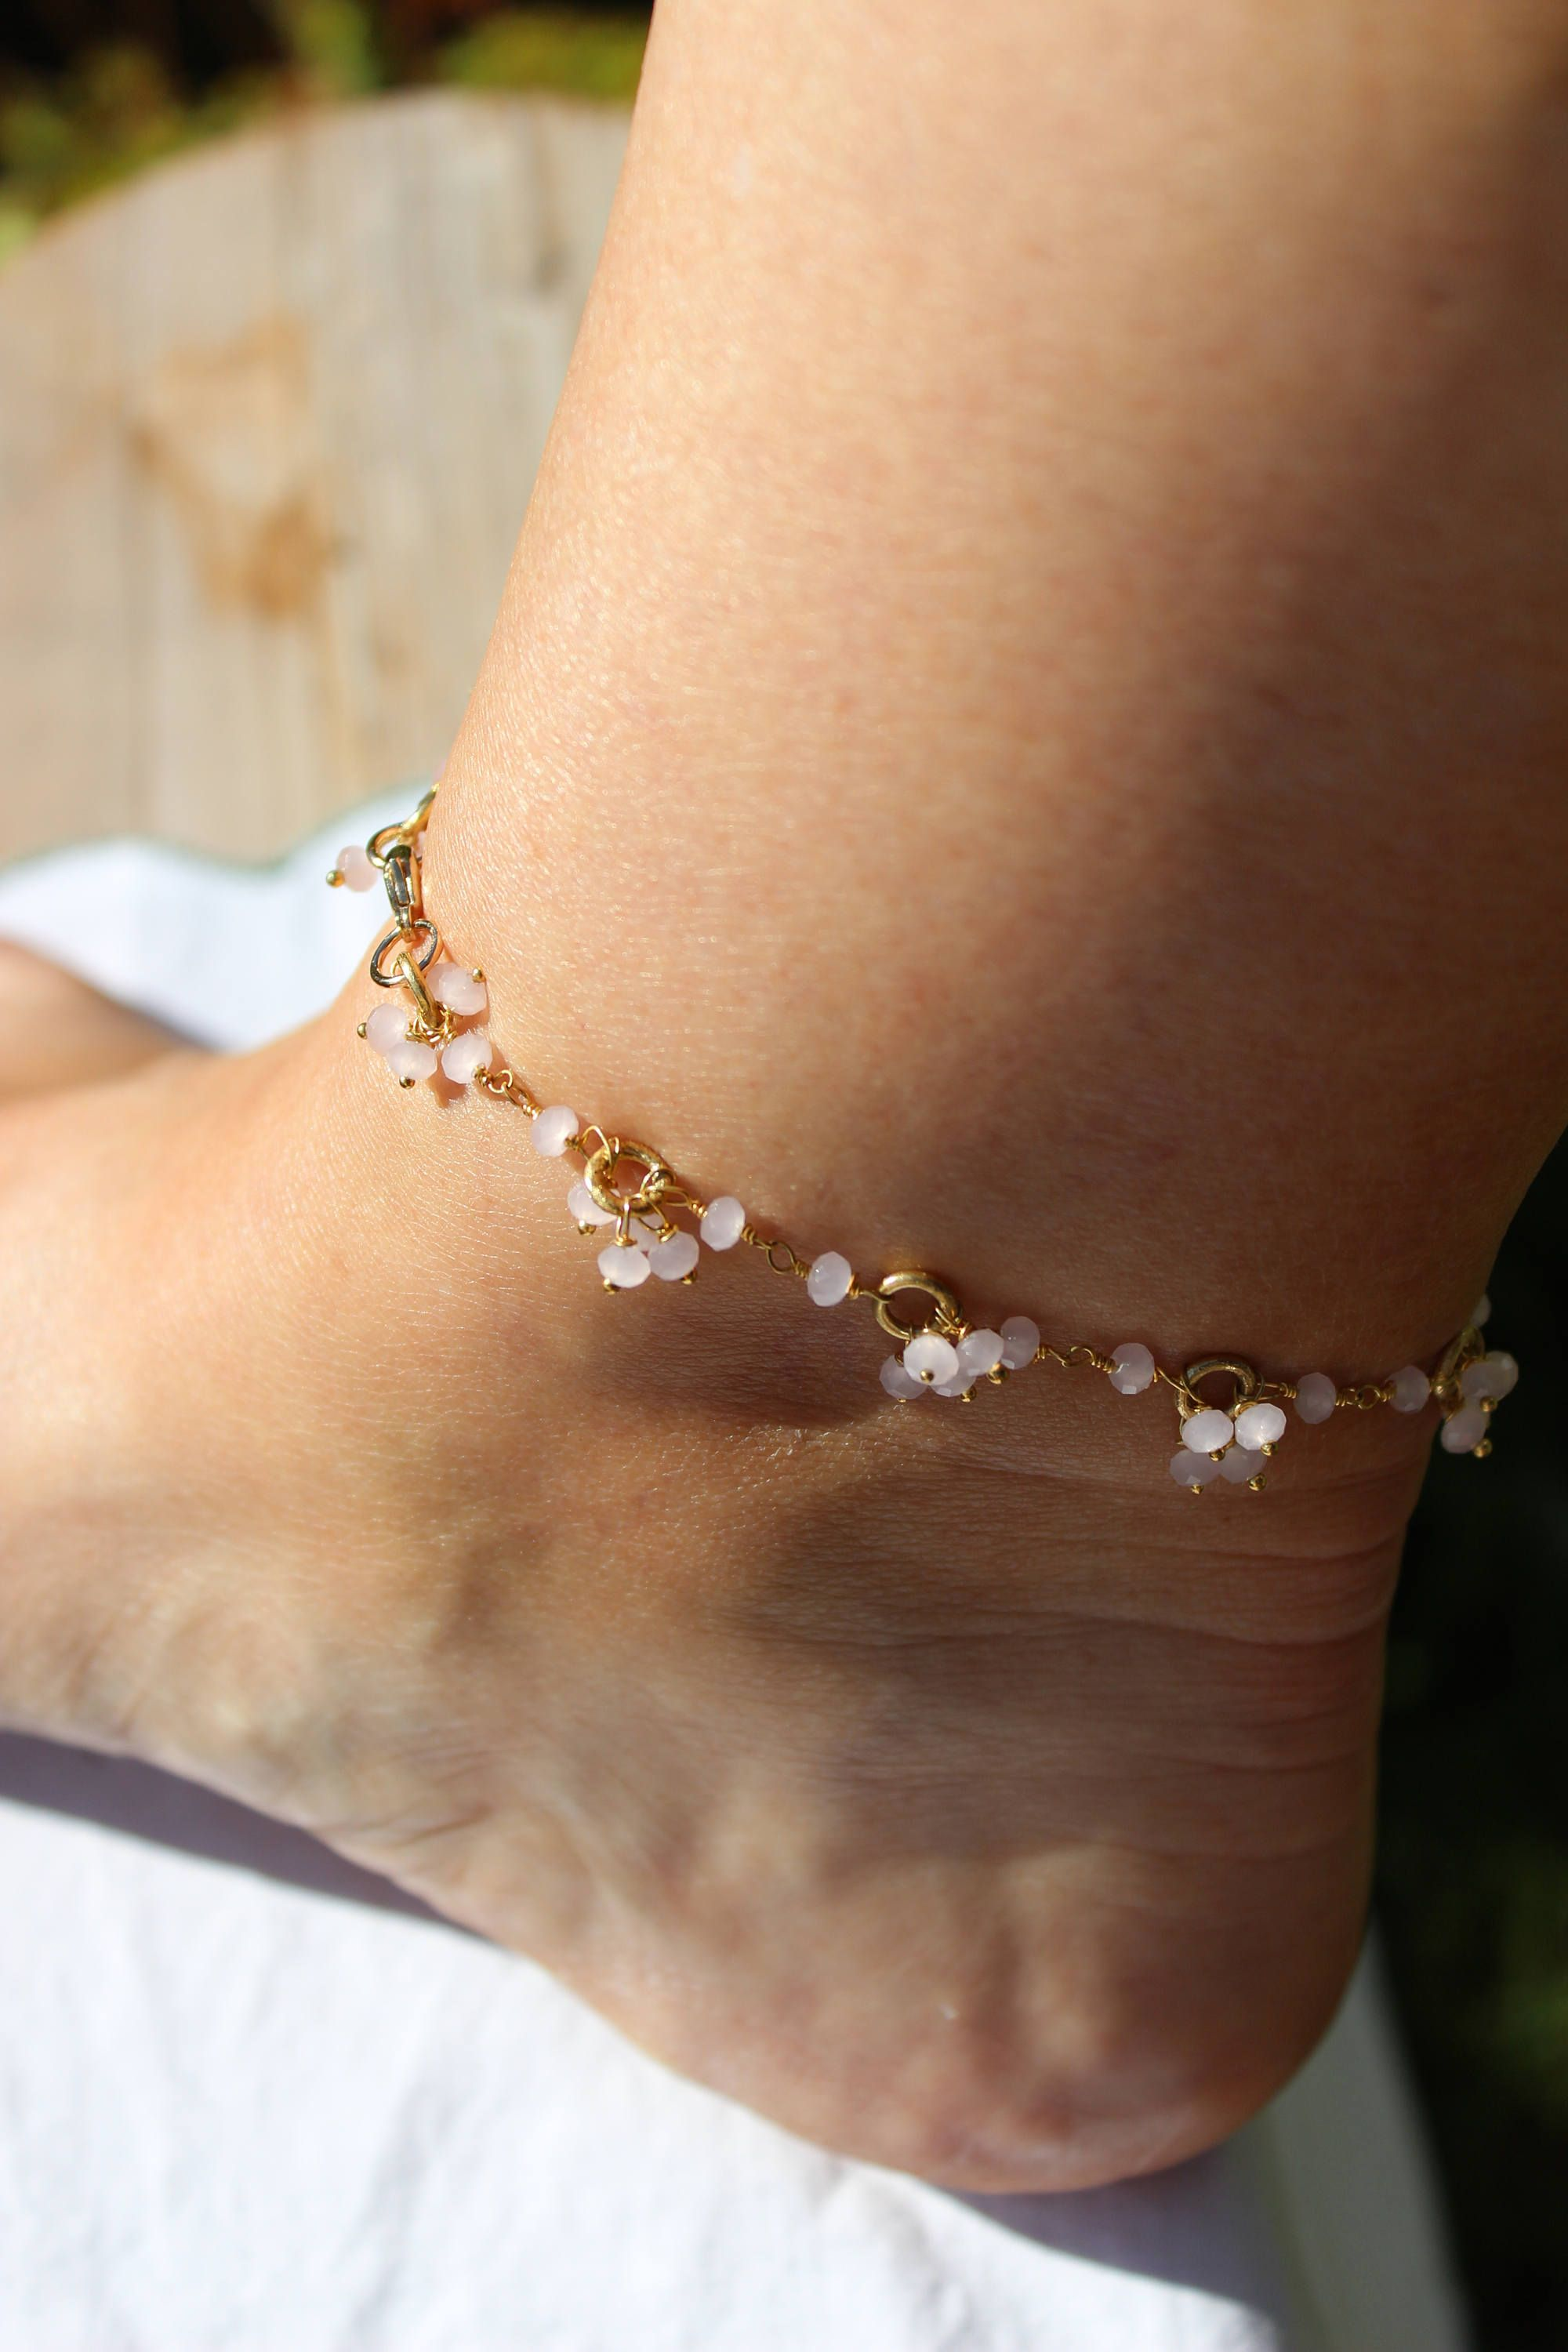 gold lady chain women dhgate for foot design from jewelry beach rose anklet sandal barefoot reinestone crystal product